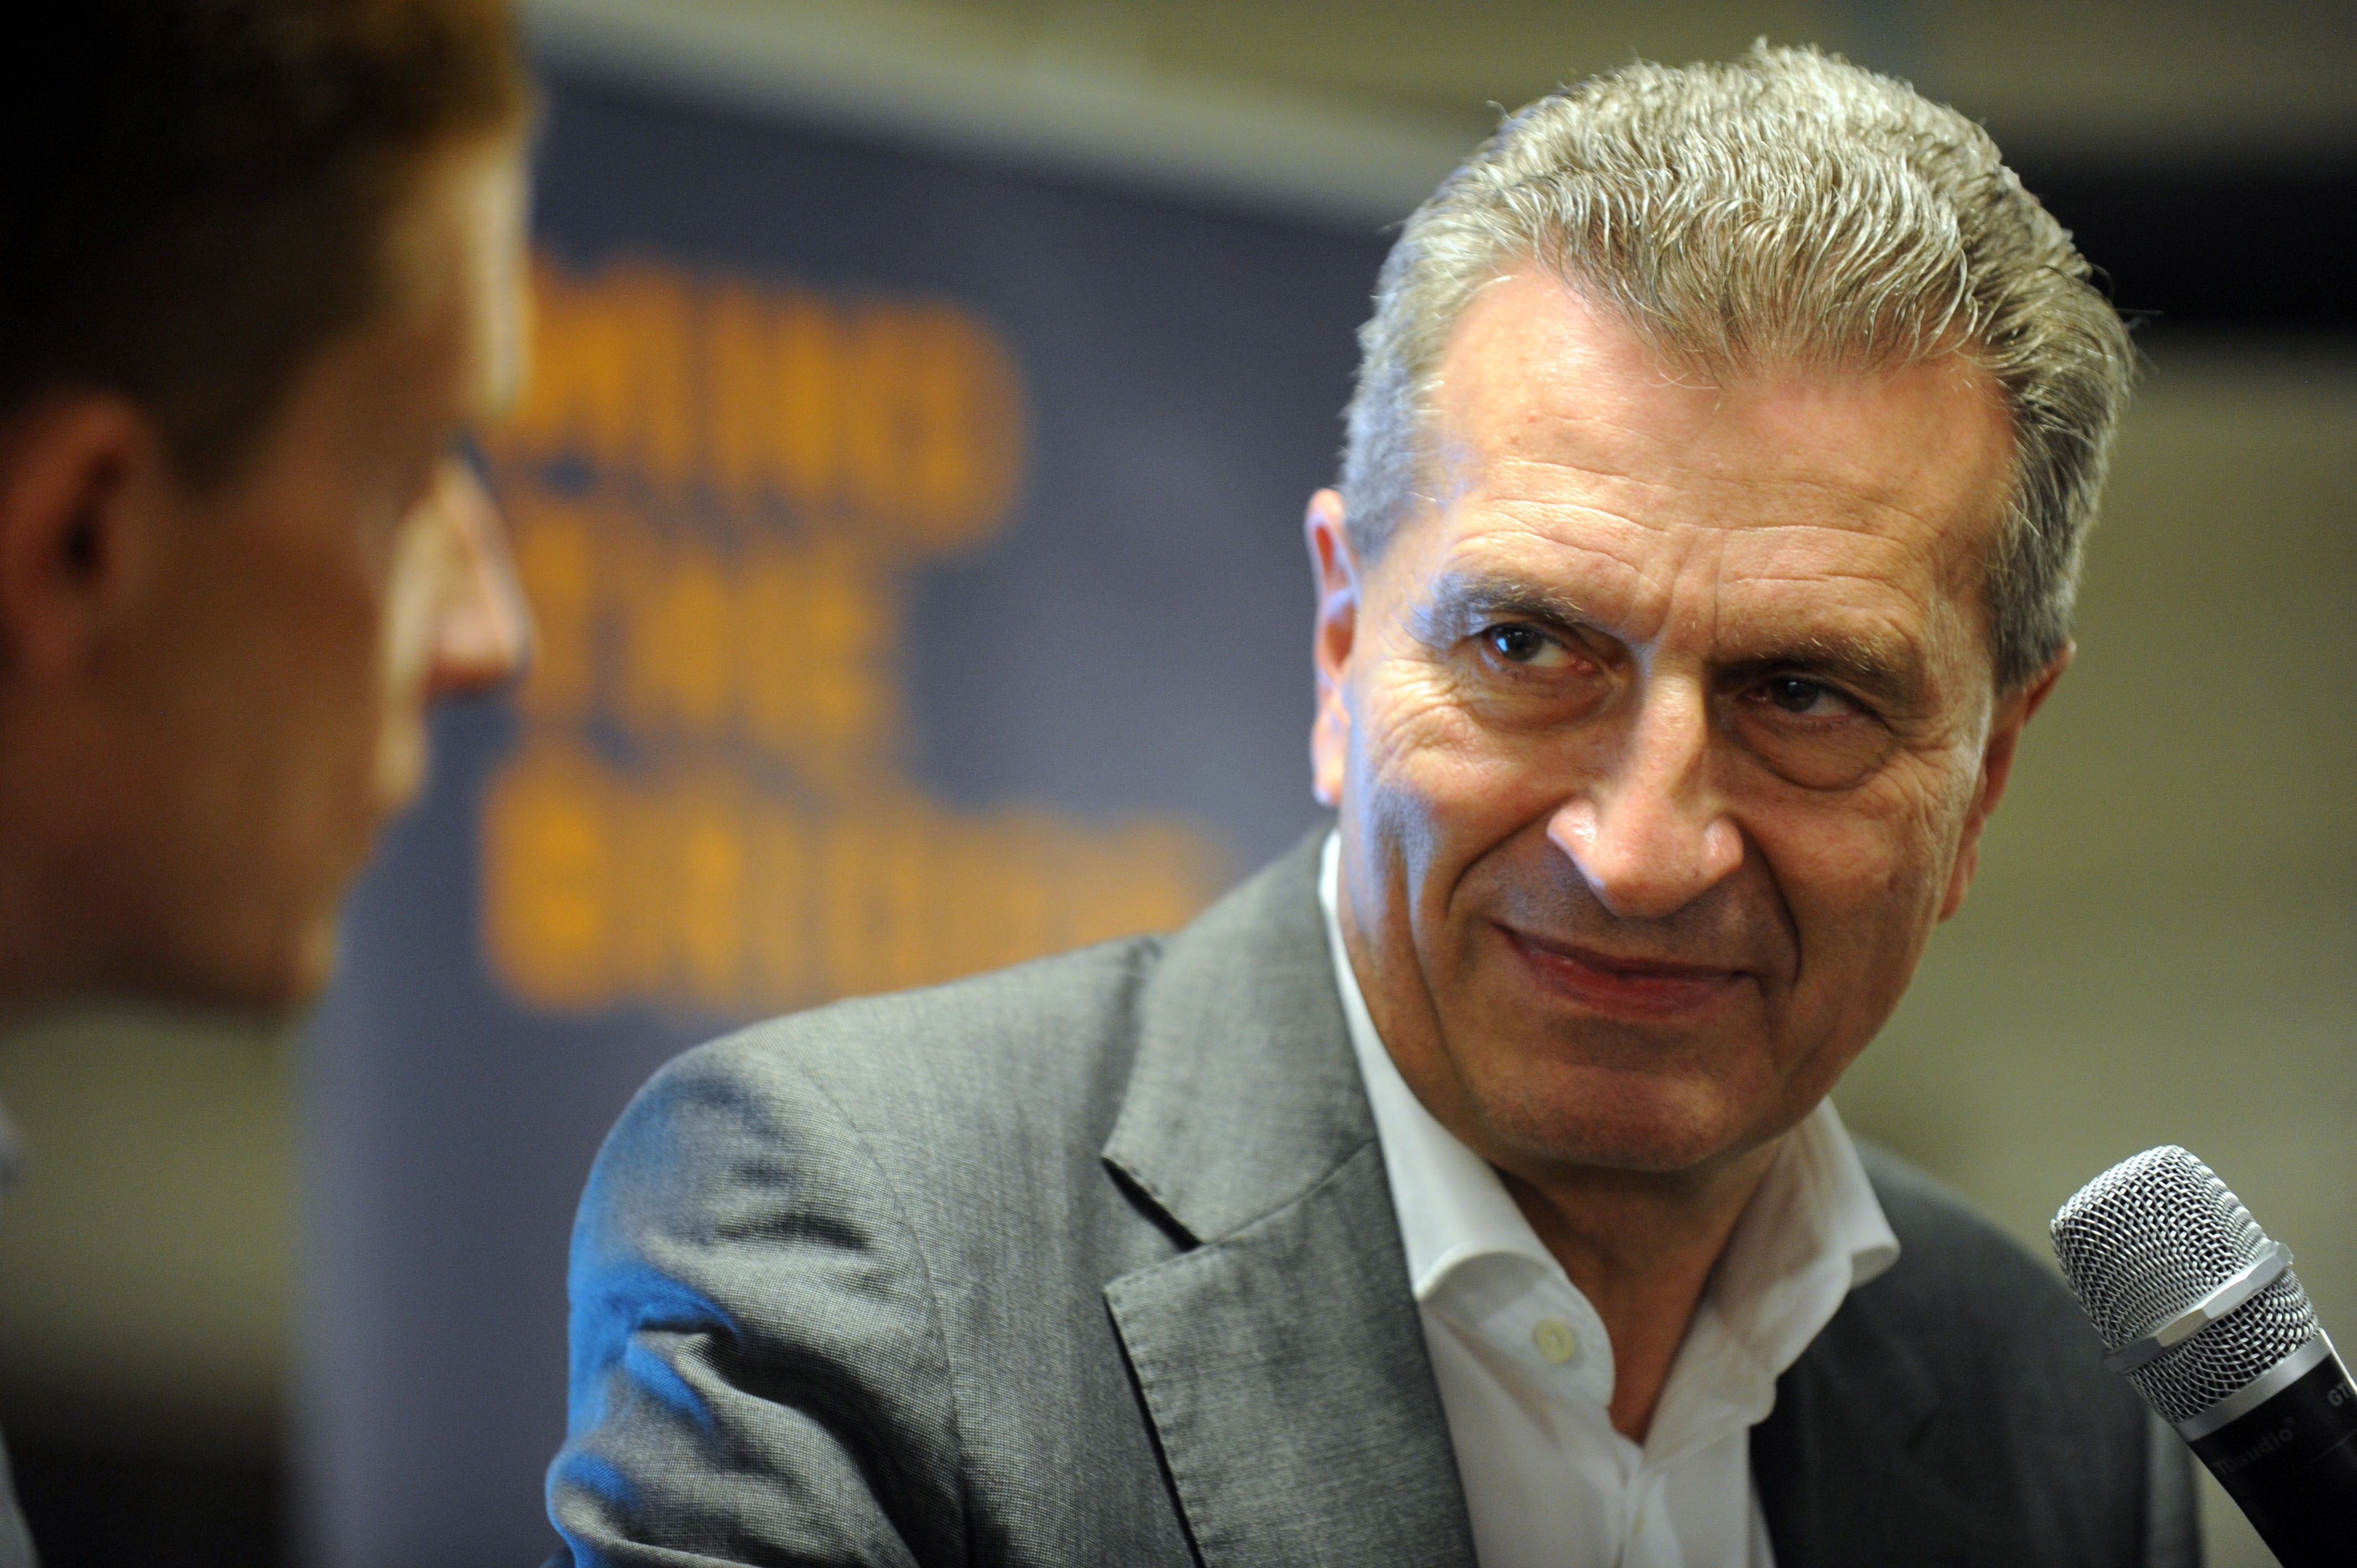 Digital Commissioner Günther Oettinger during a visit to Silicon Valley this week